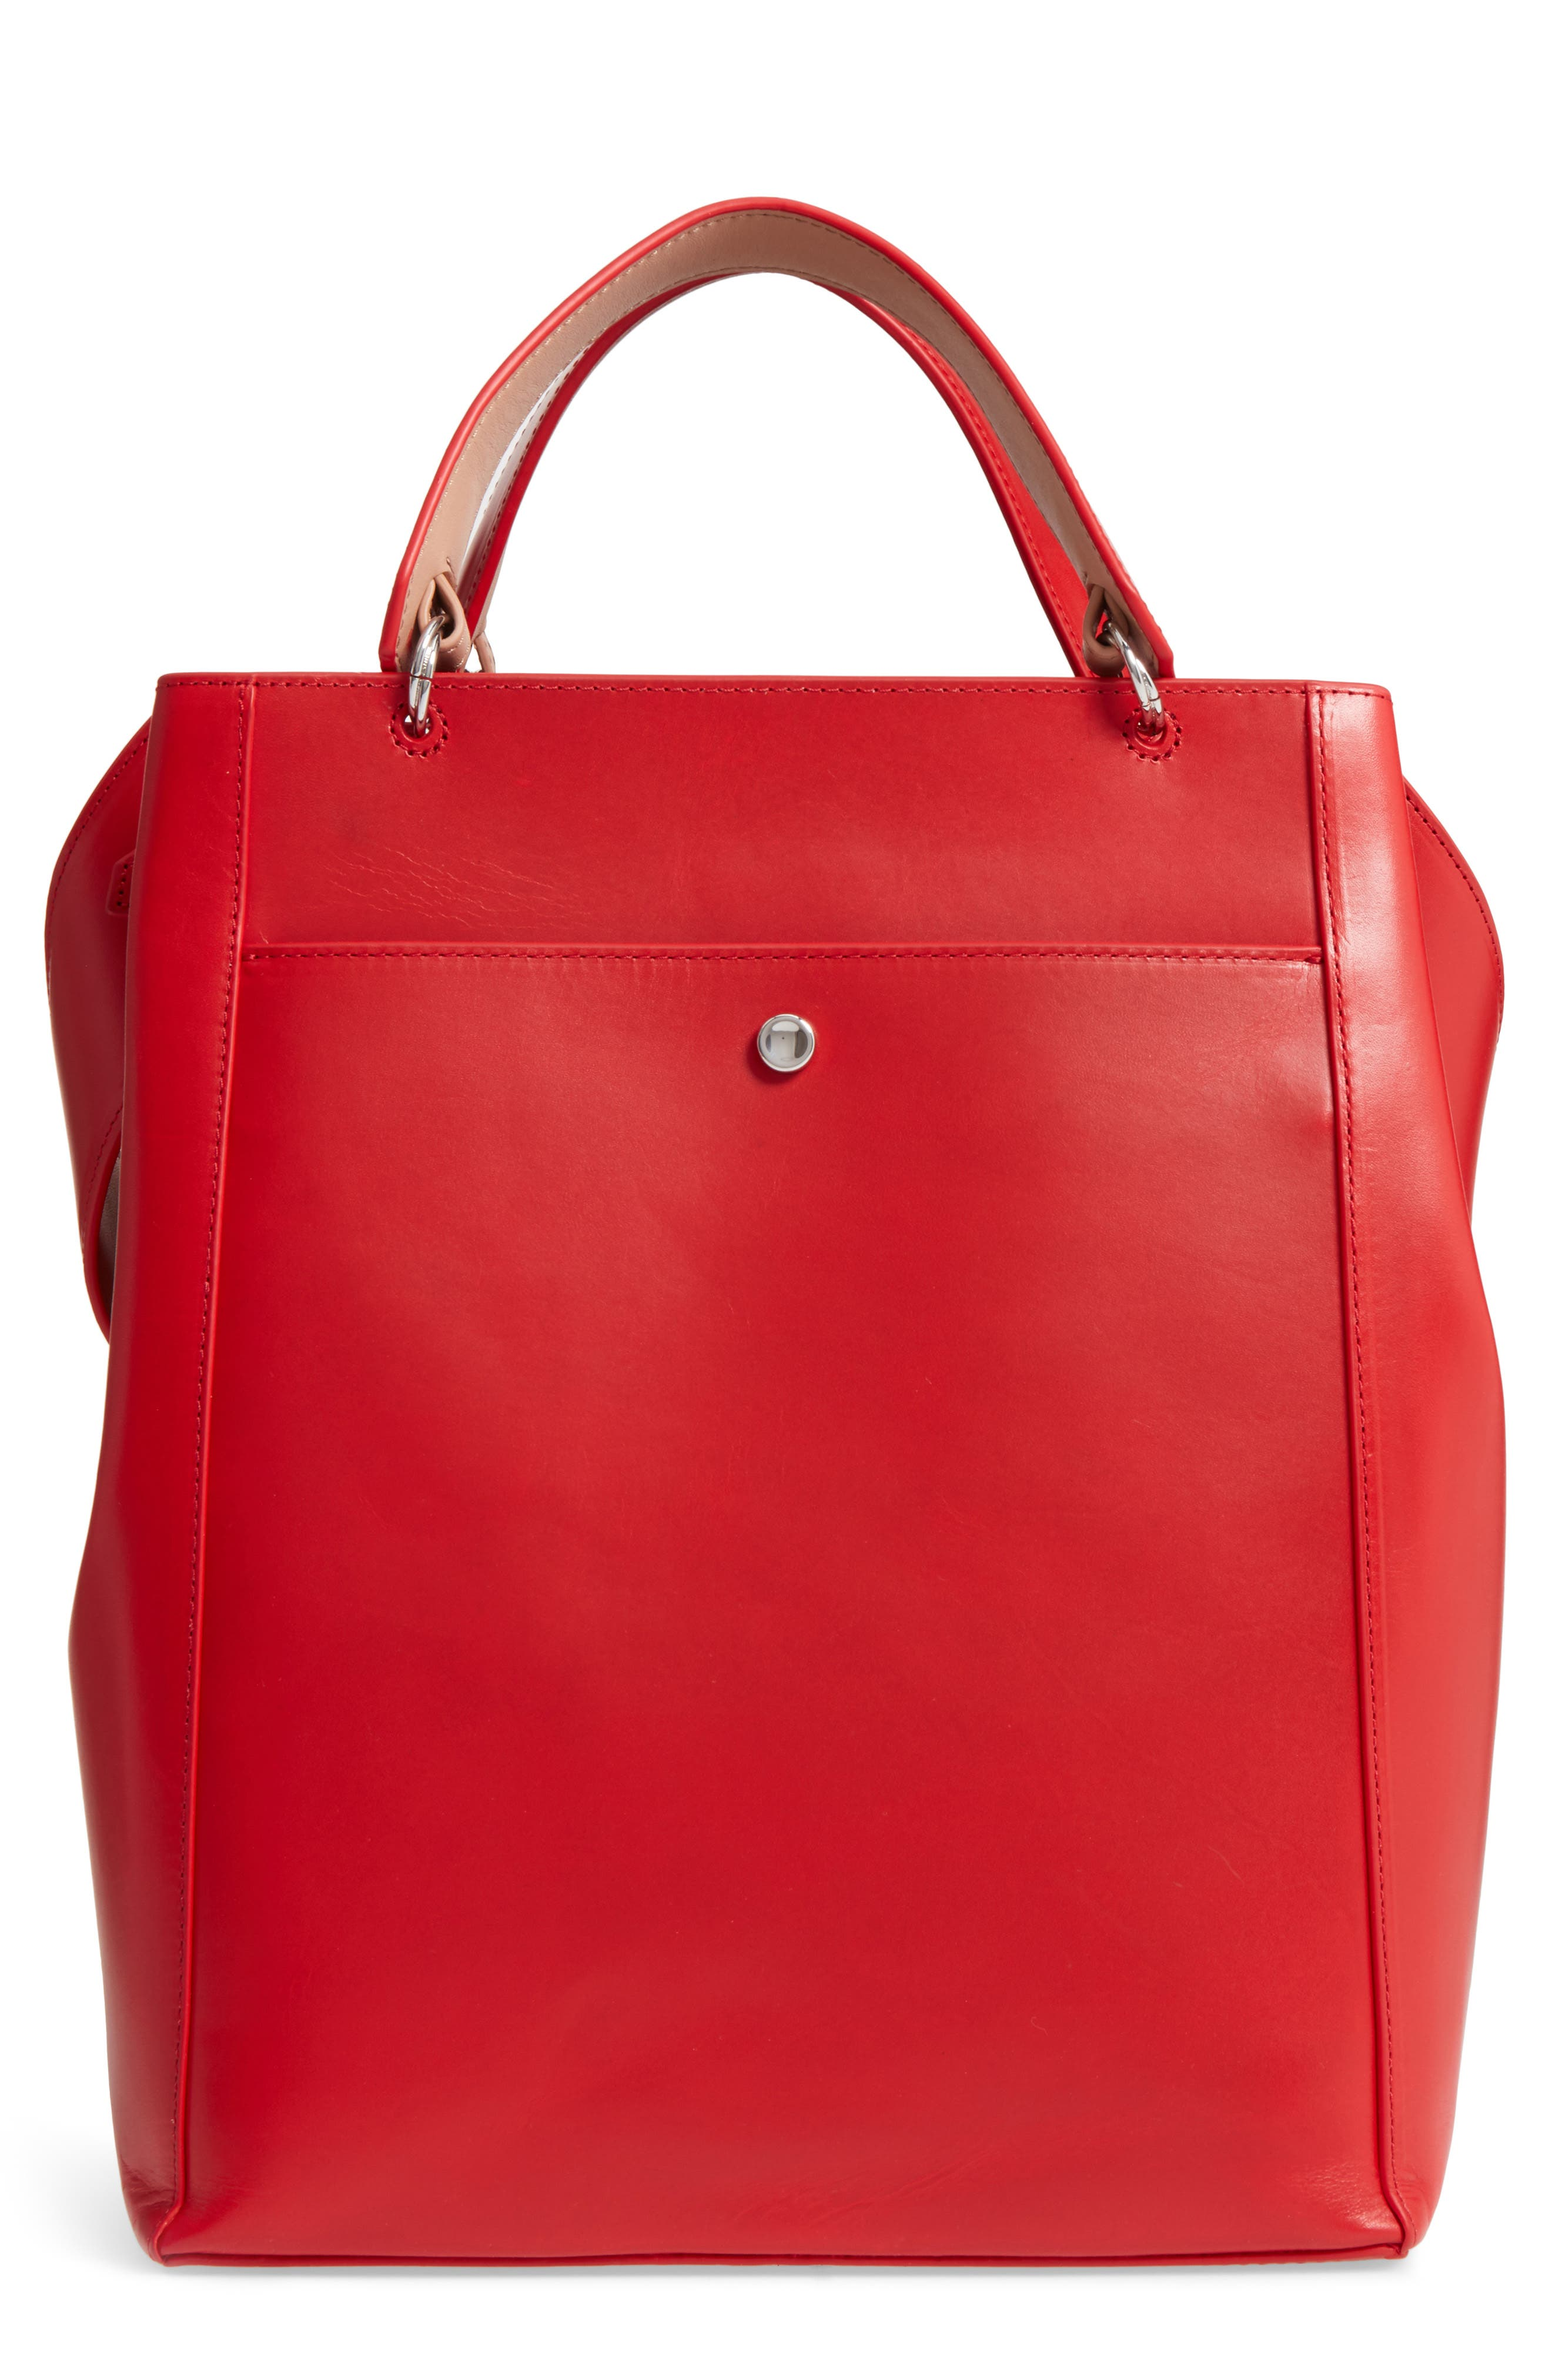 Main Image - Elizabeth and James Large Eloise Leather Tote